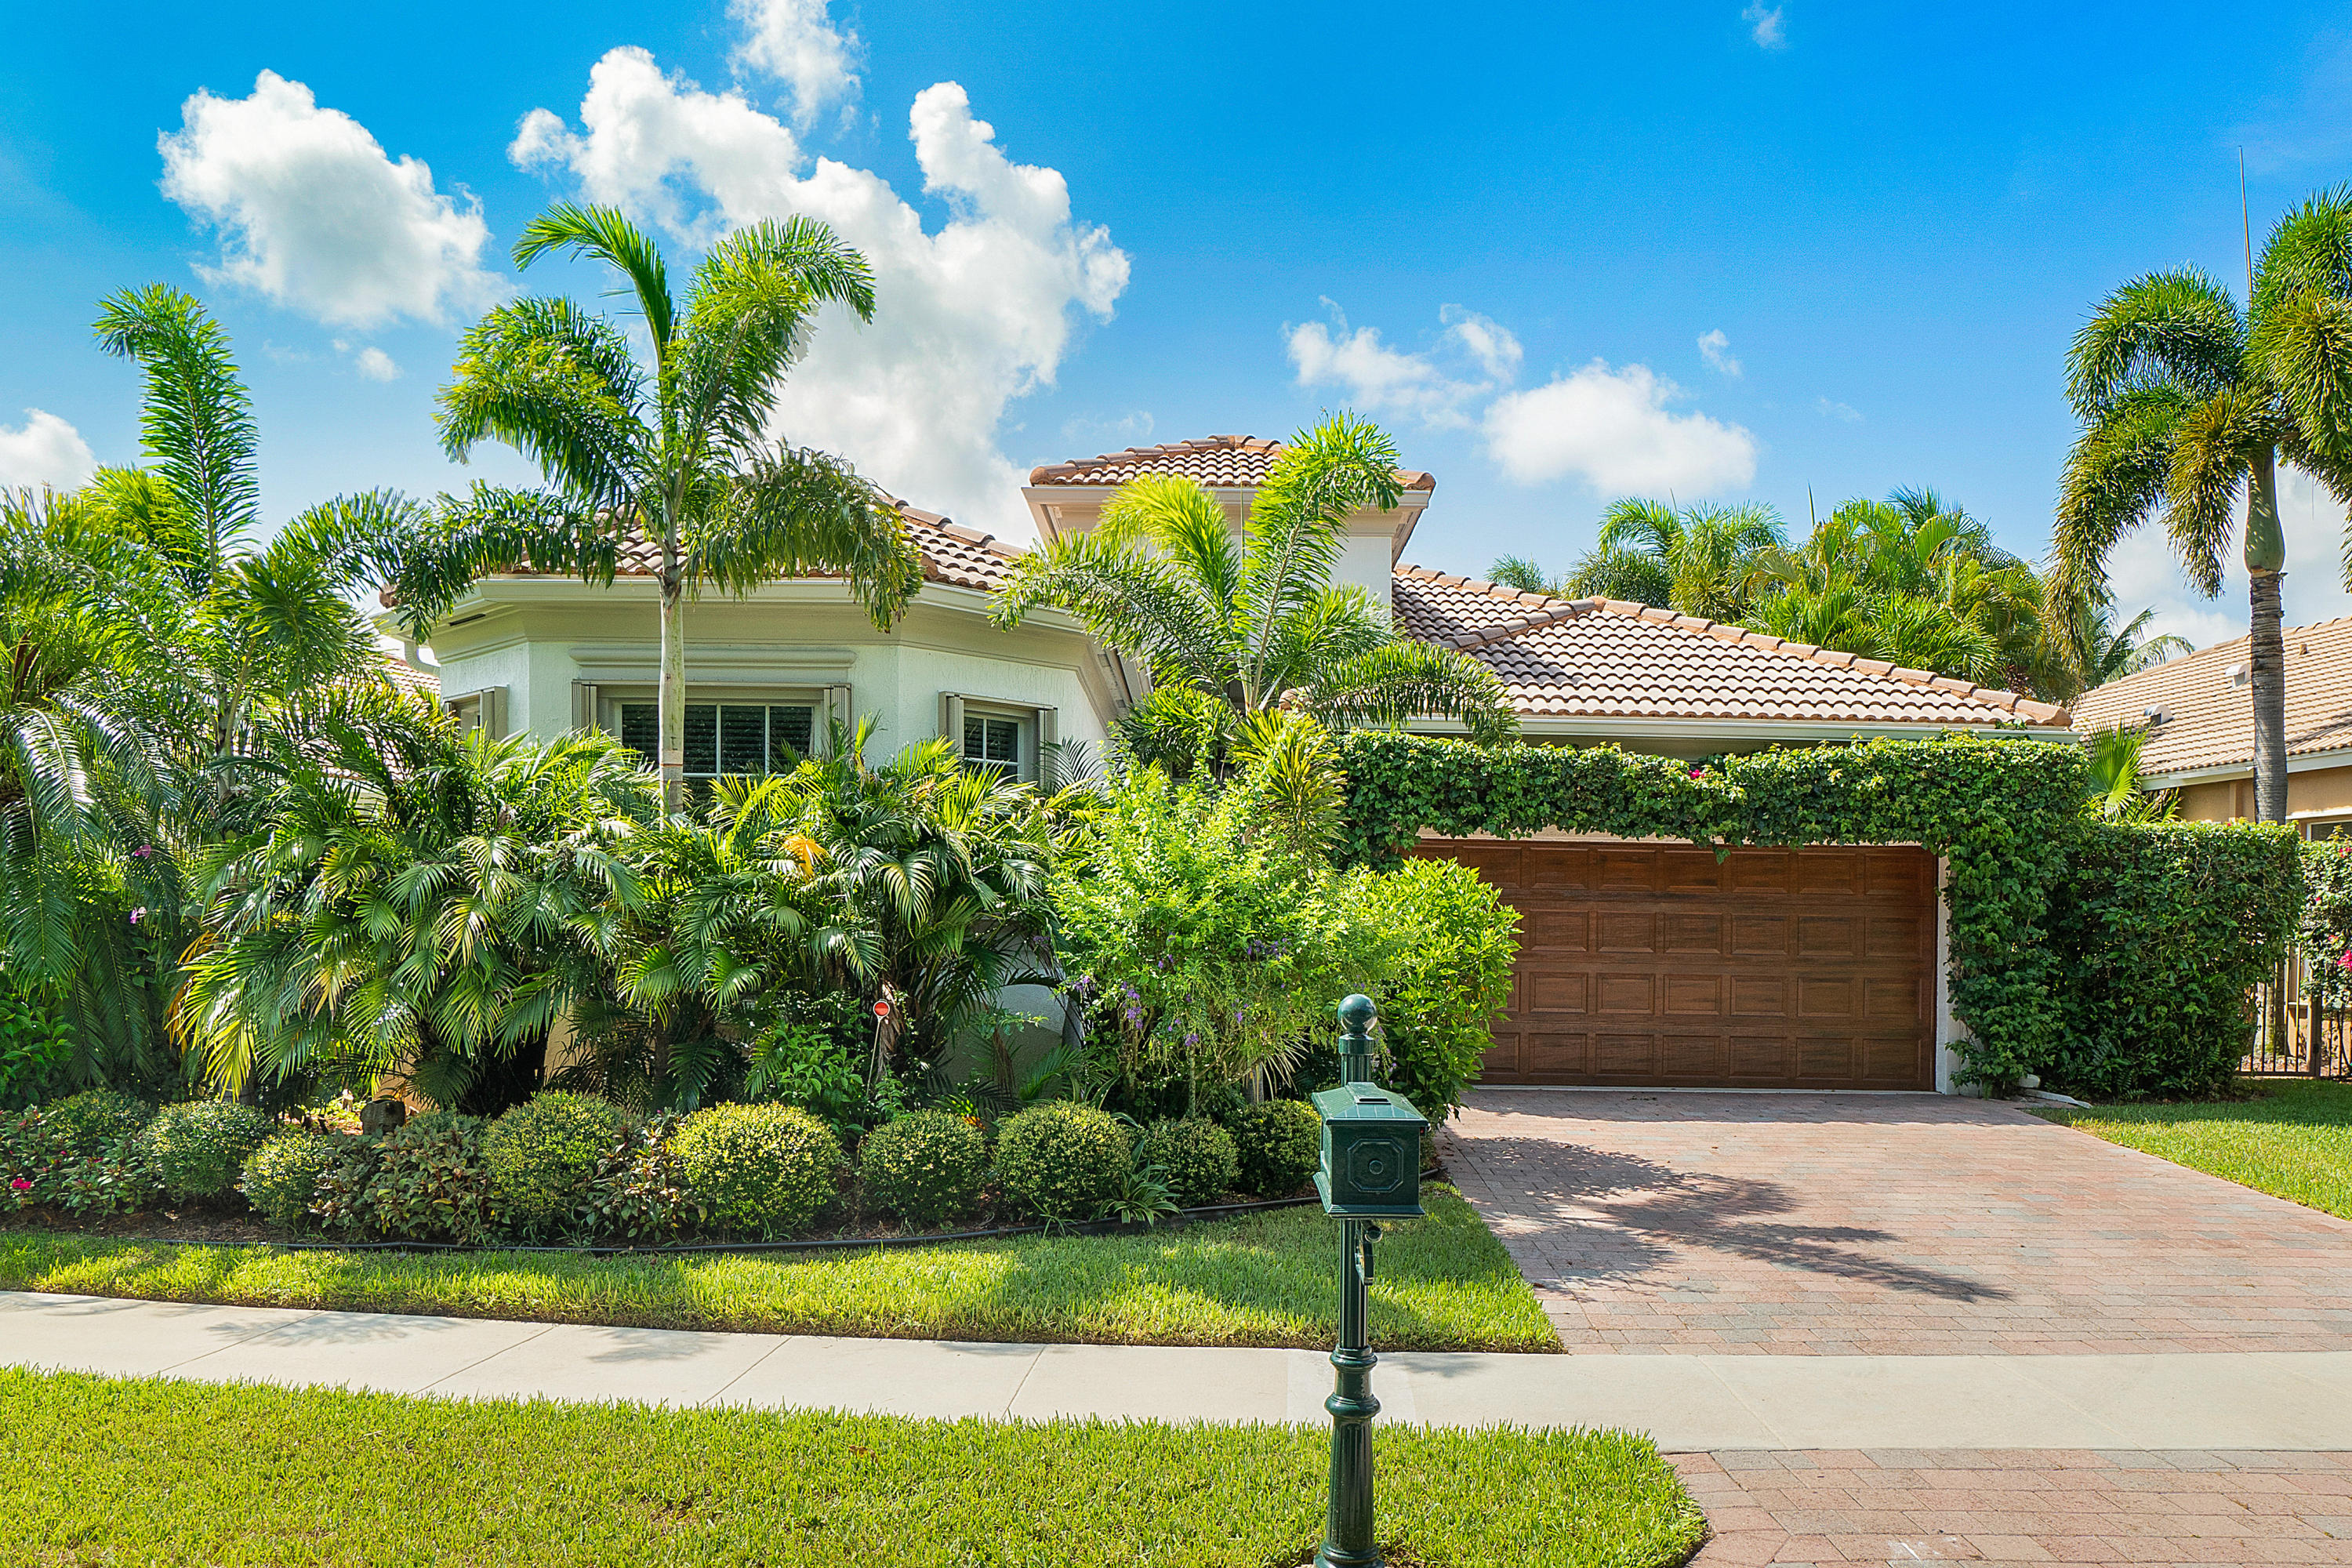 5594 Via De La Plata Circle  Delray Beach, FL 33484